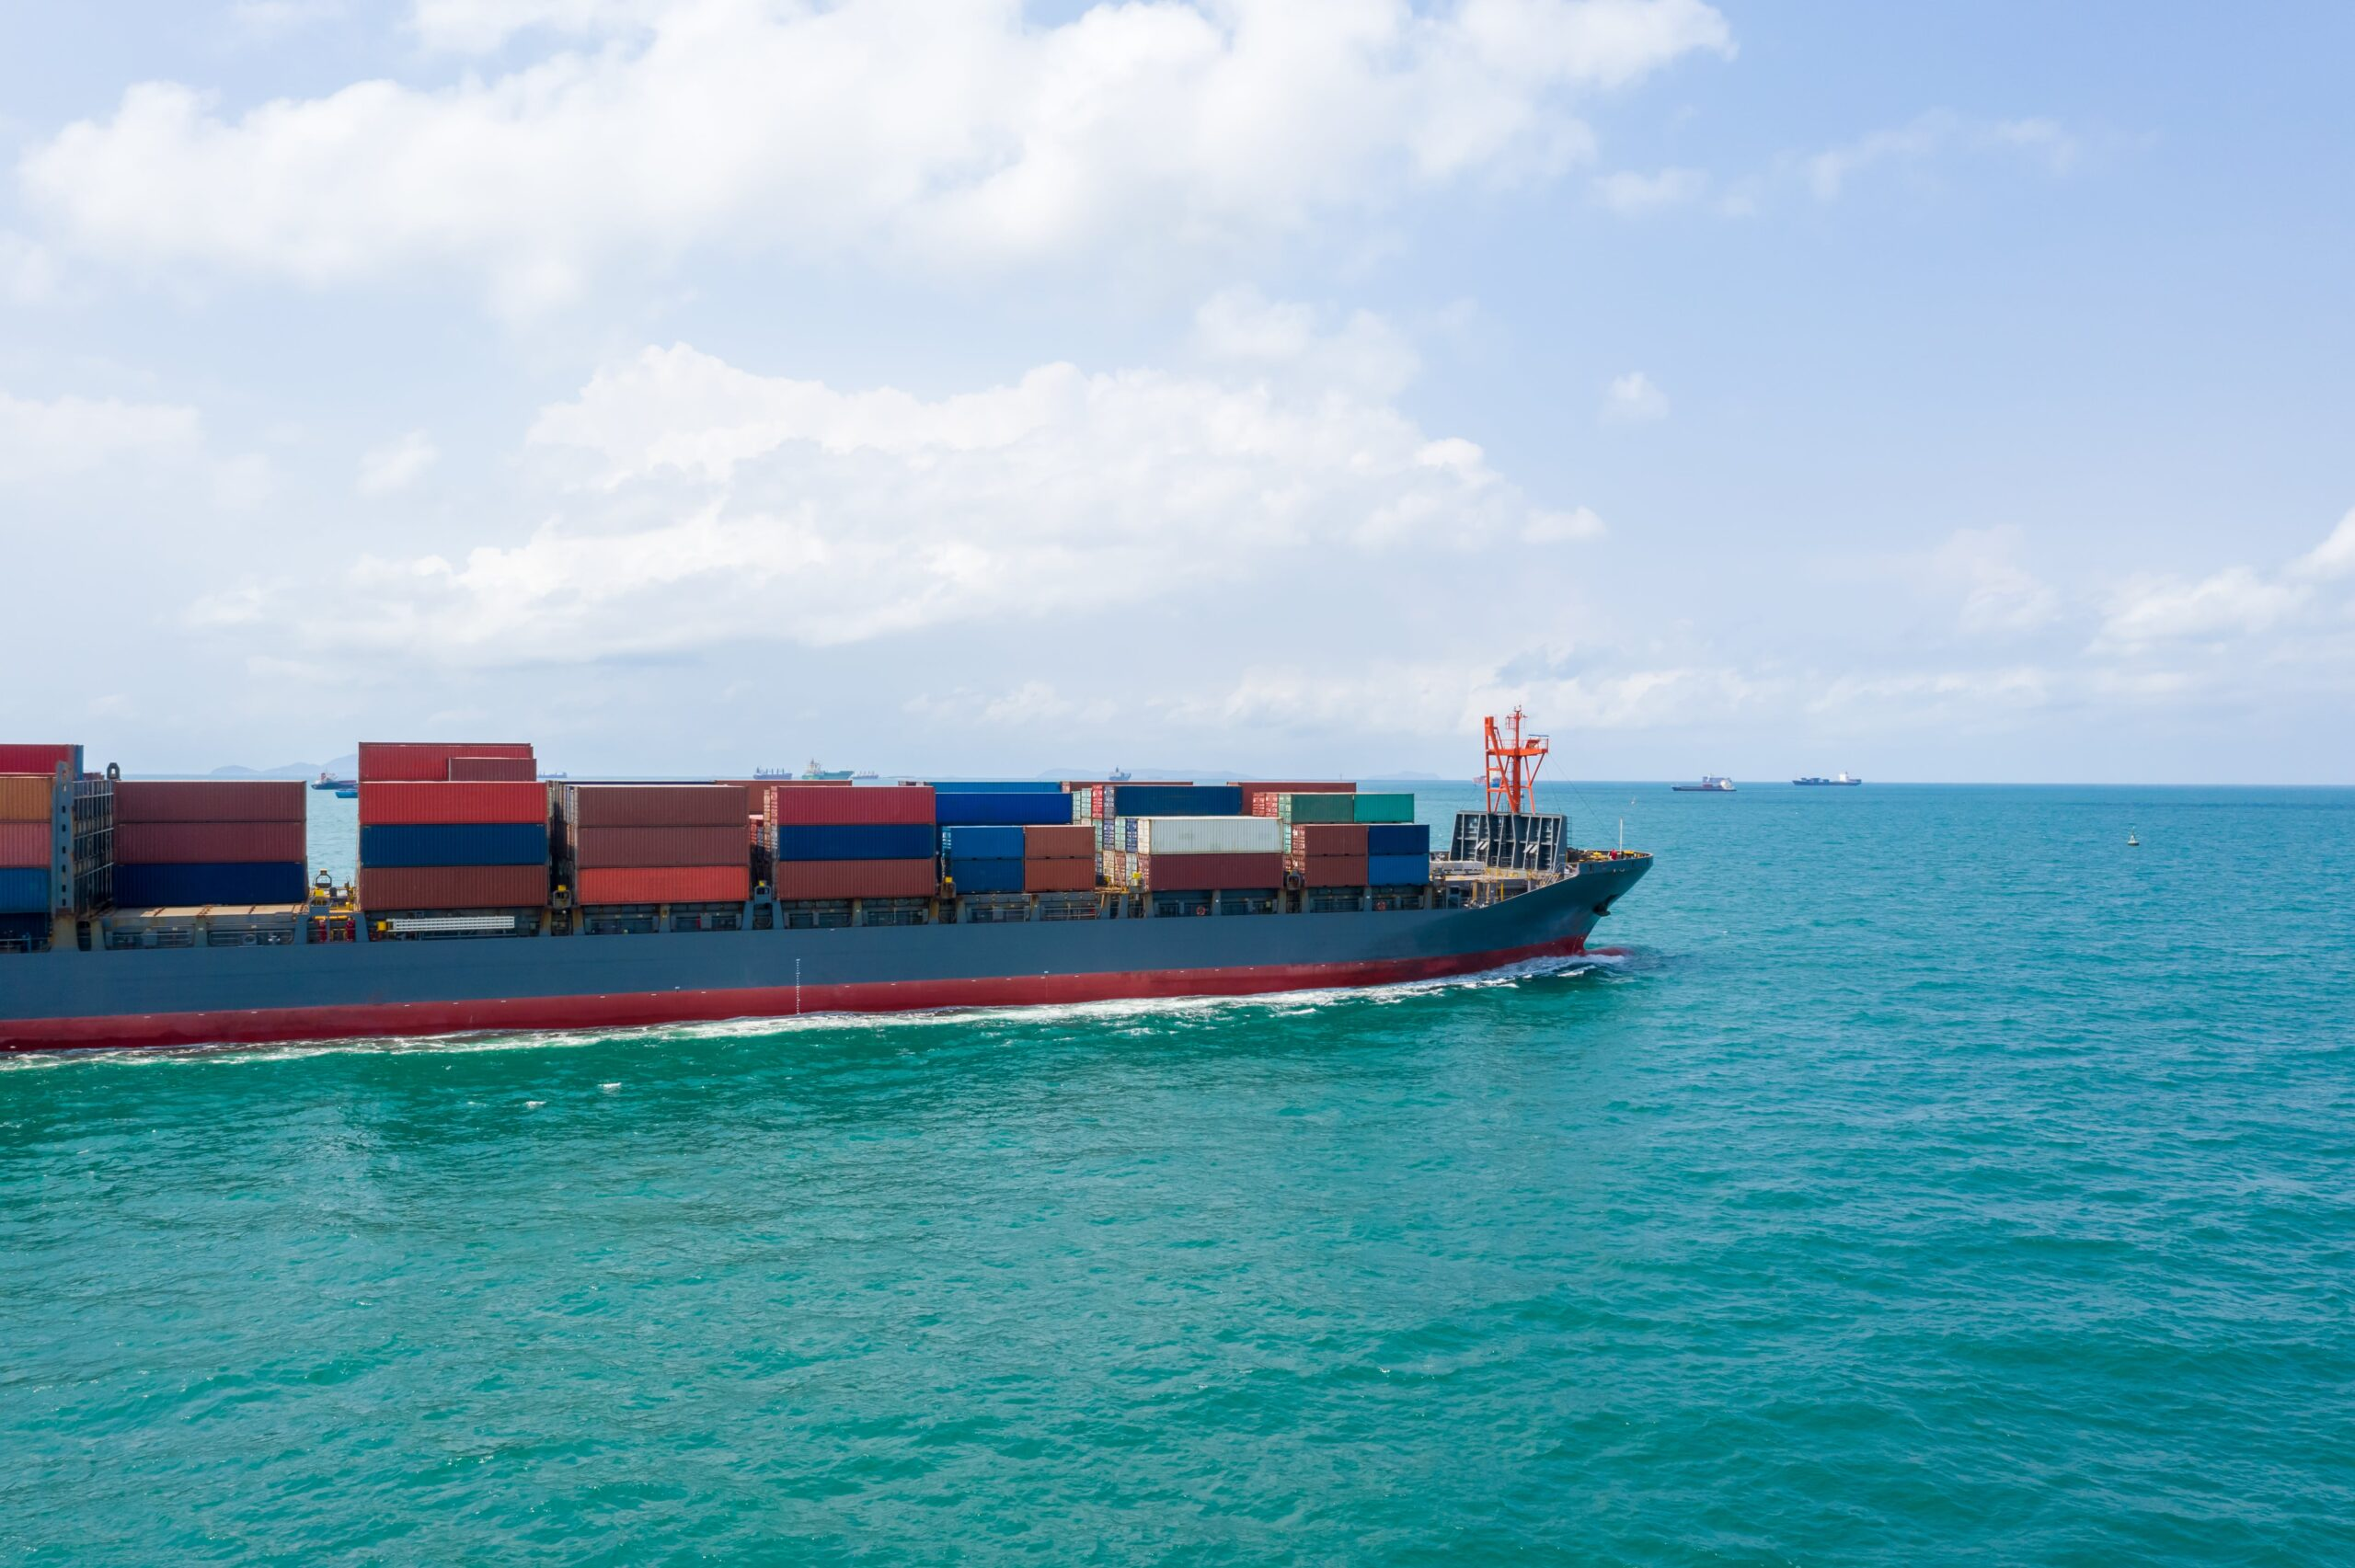 Ship Online Products To Haiti Through An Express Delivery